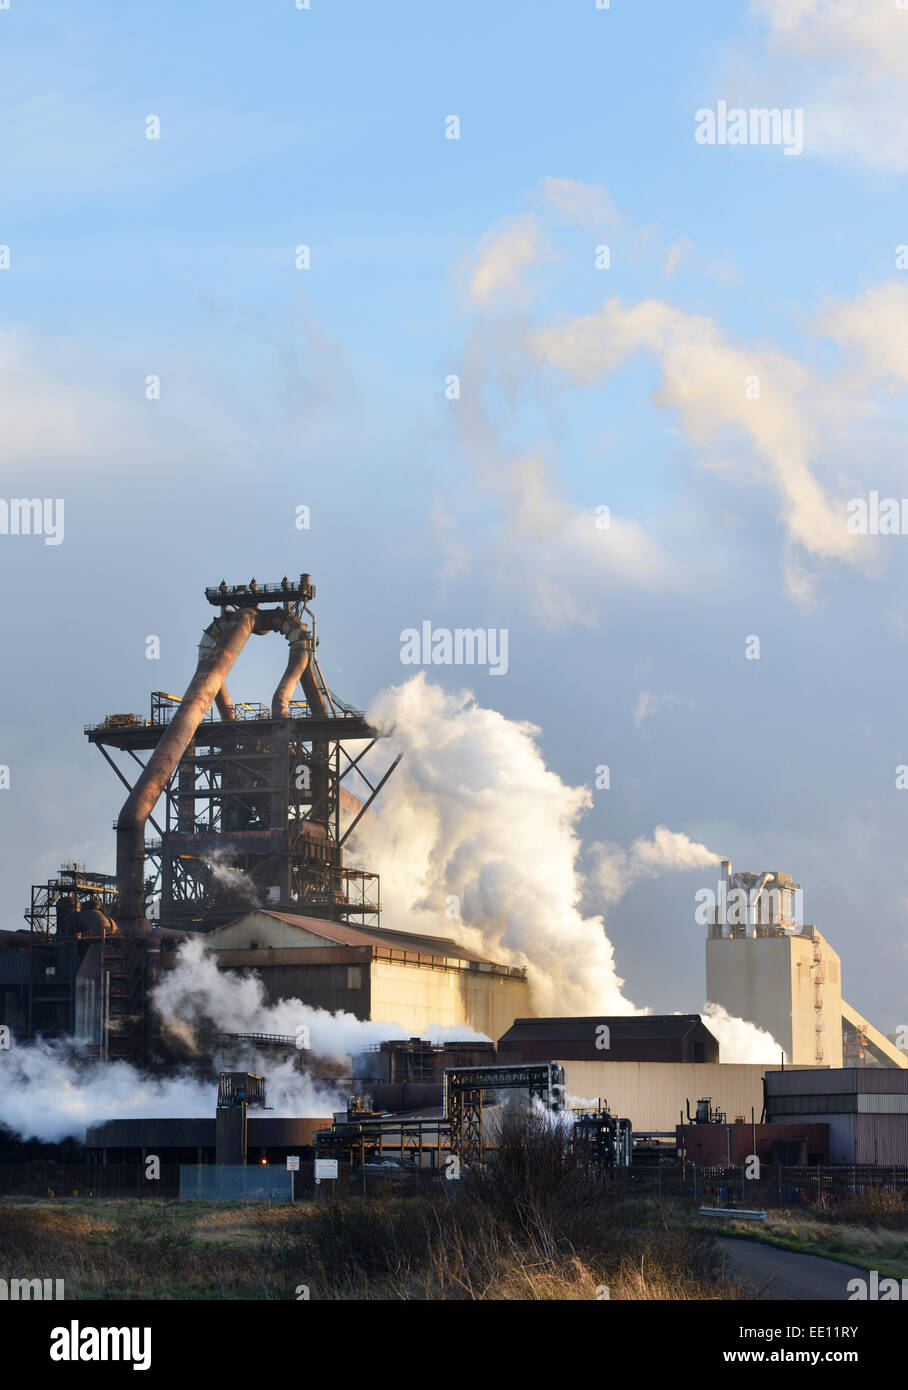 Redcar Steelworks, Redcar, Cleveland. UK - Stock Image